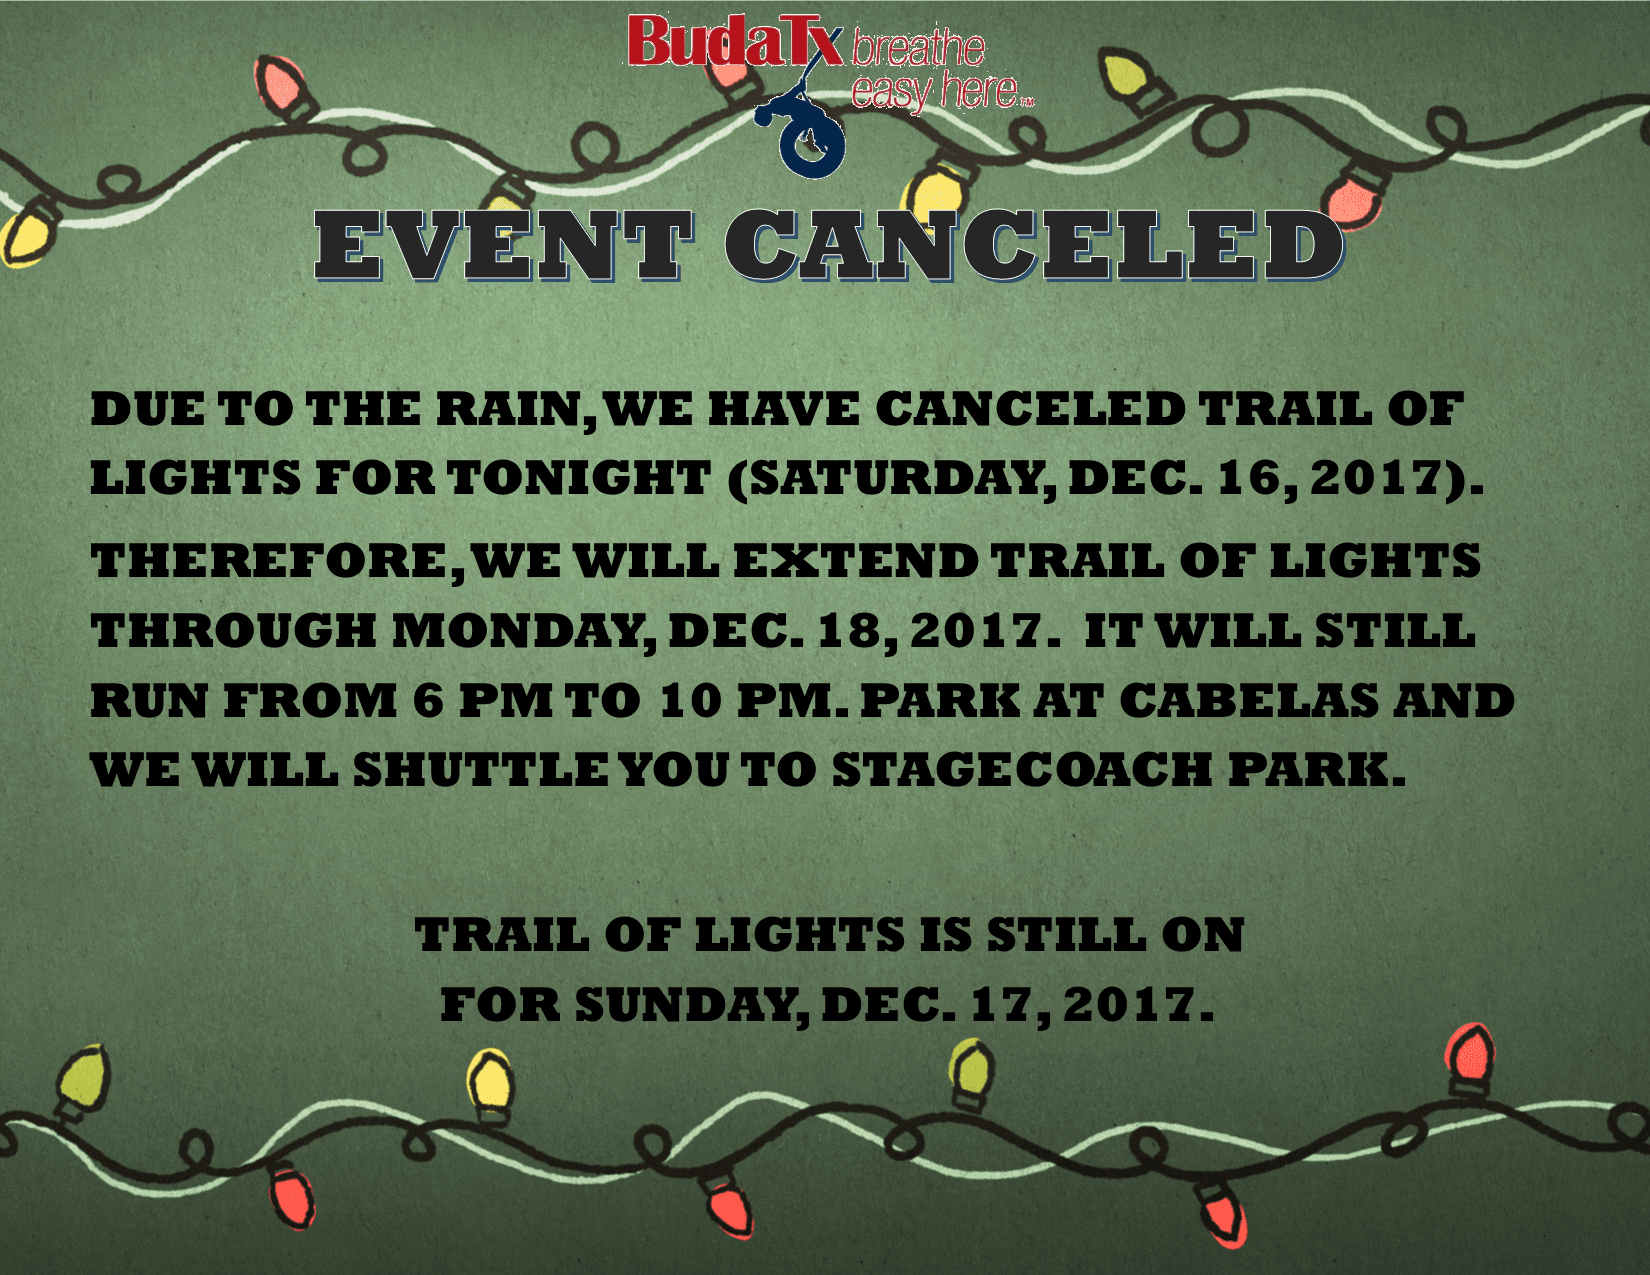 Trail of Lights Canceled